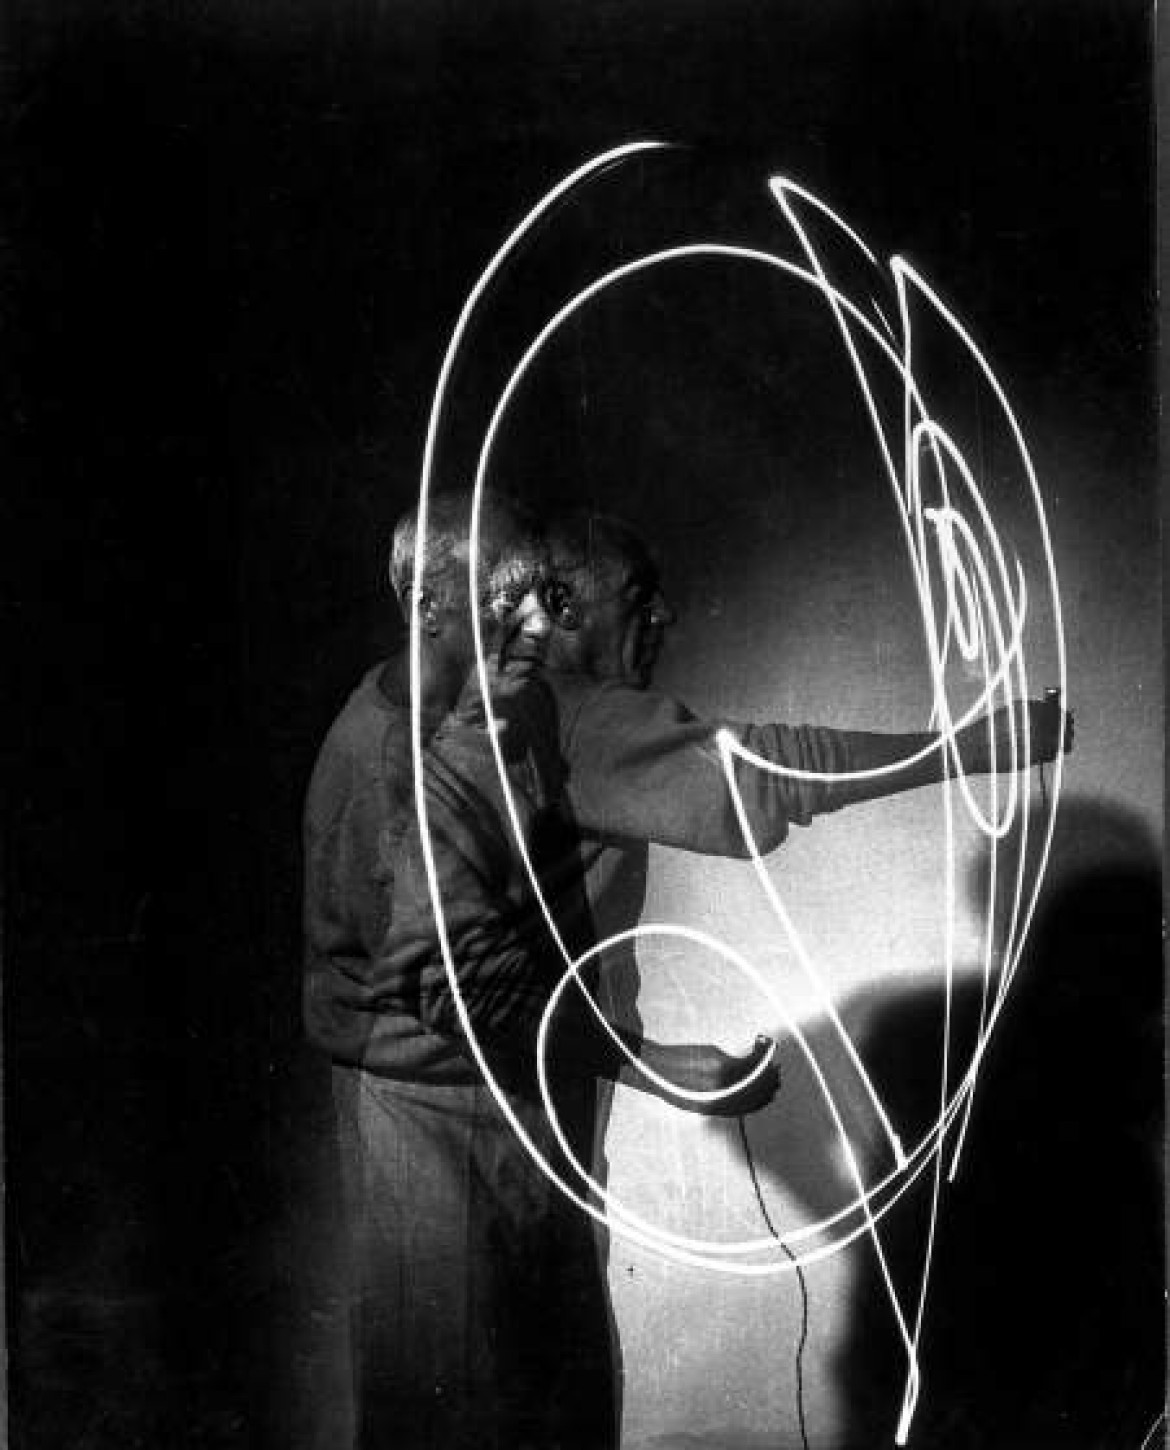 fot. Gjon Mili, LIFE Picture Collection/Getty Images